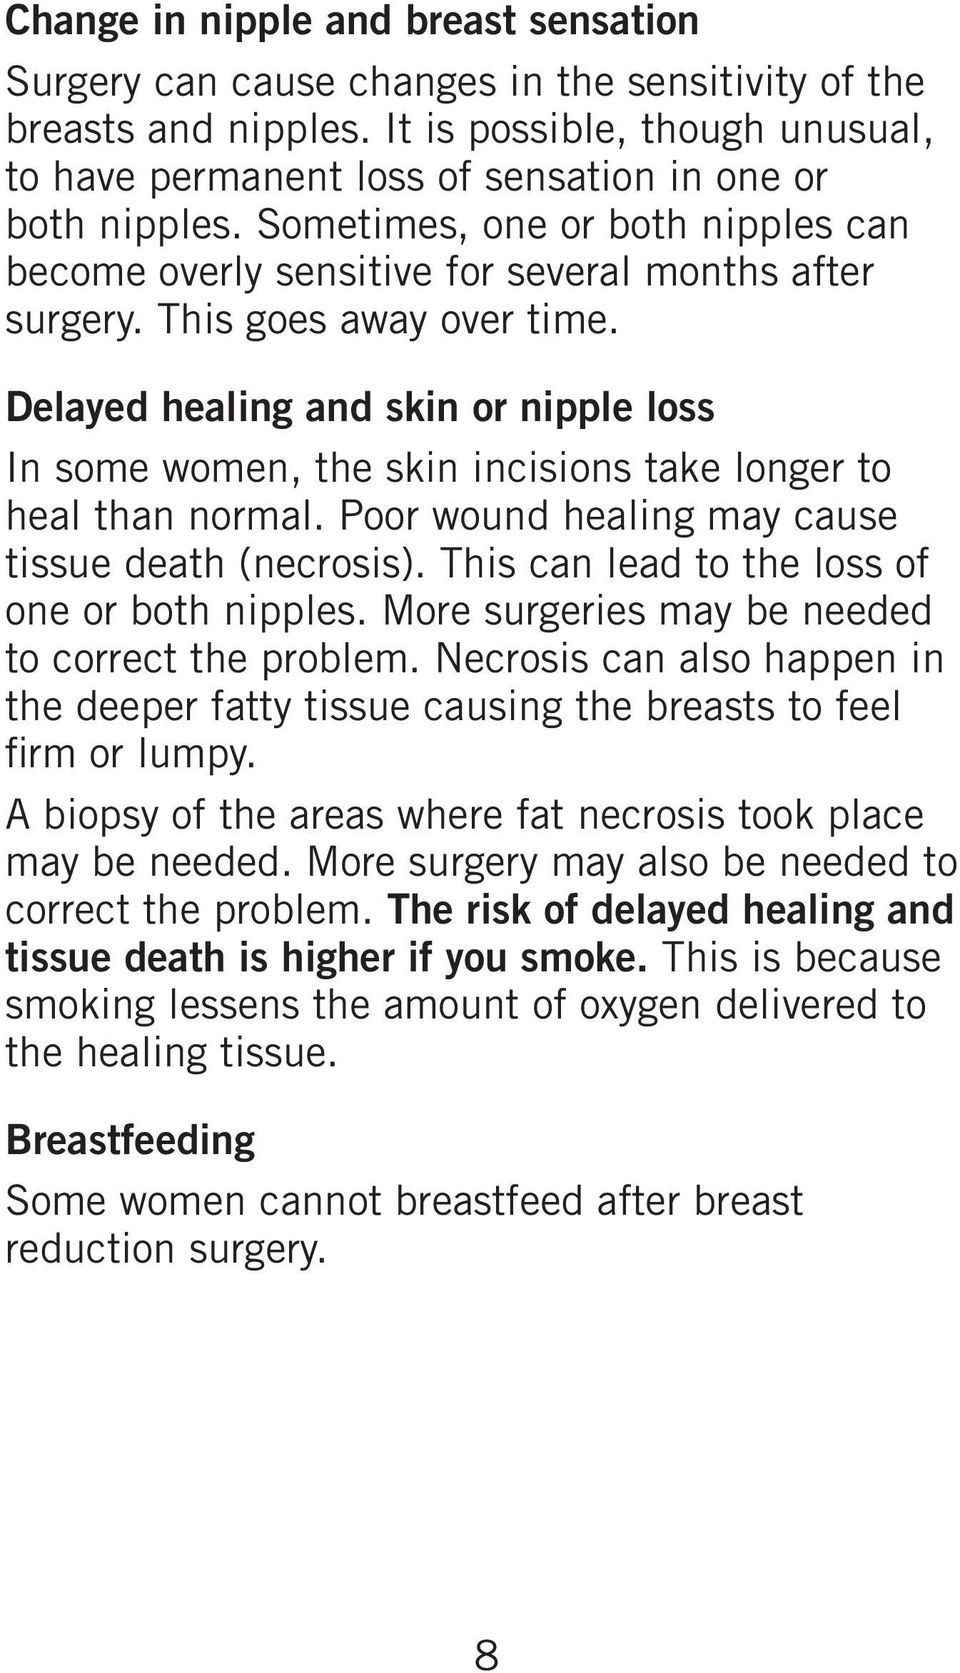 This goes away over time. Delayed healing and skin or nipple loss In some women, the skin incisions take longer to heal than normal. Poor wound healing may cause tissue death (necrosis).